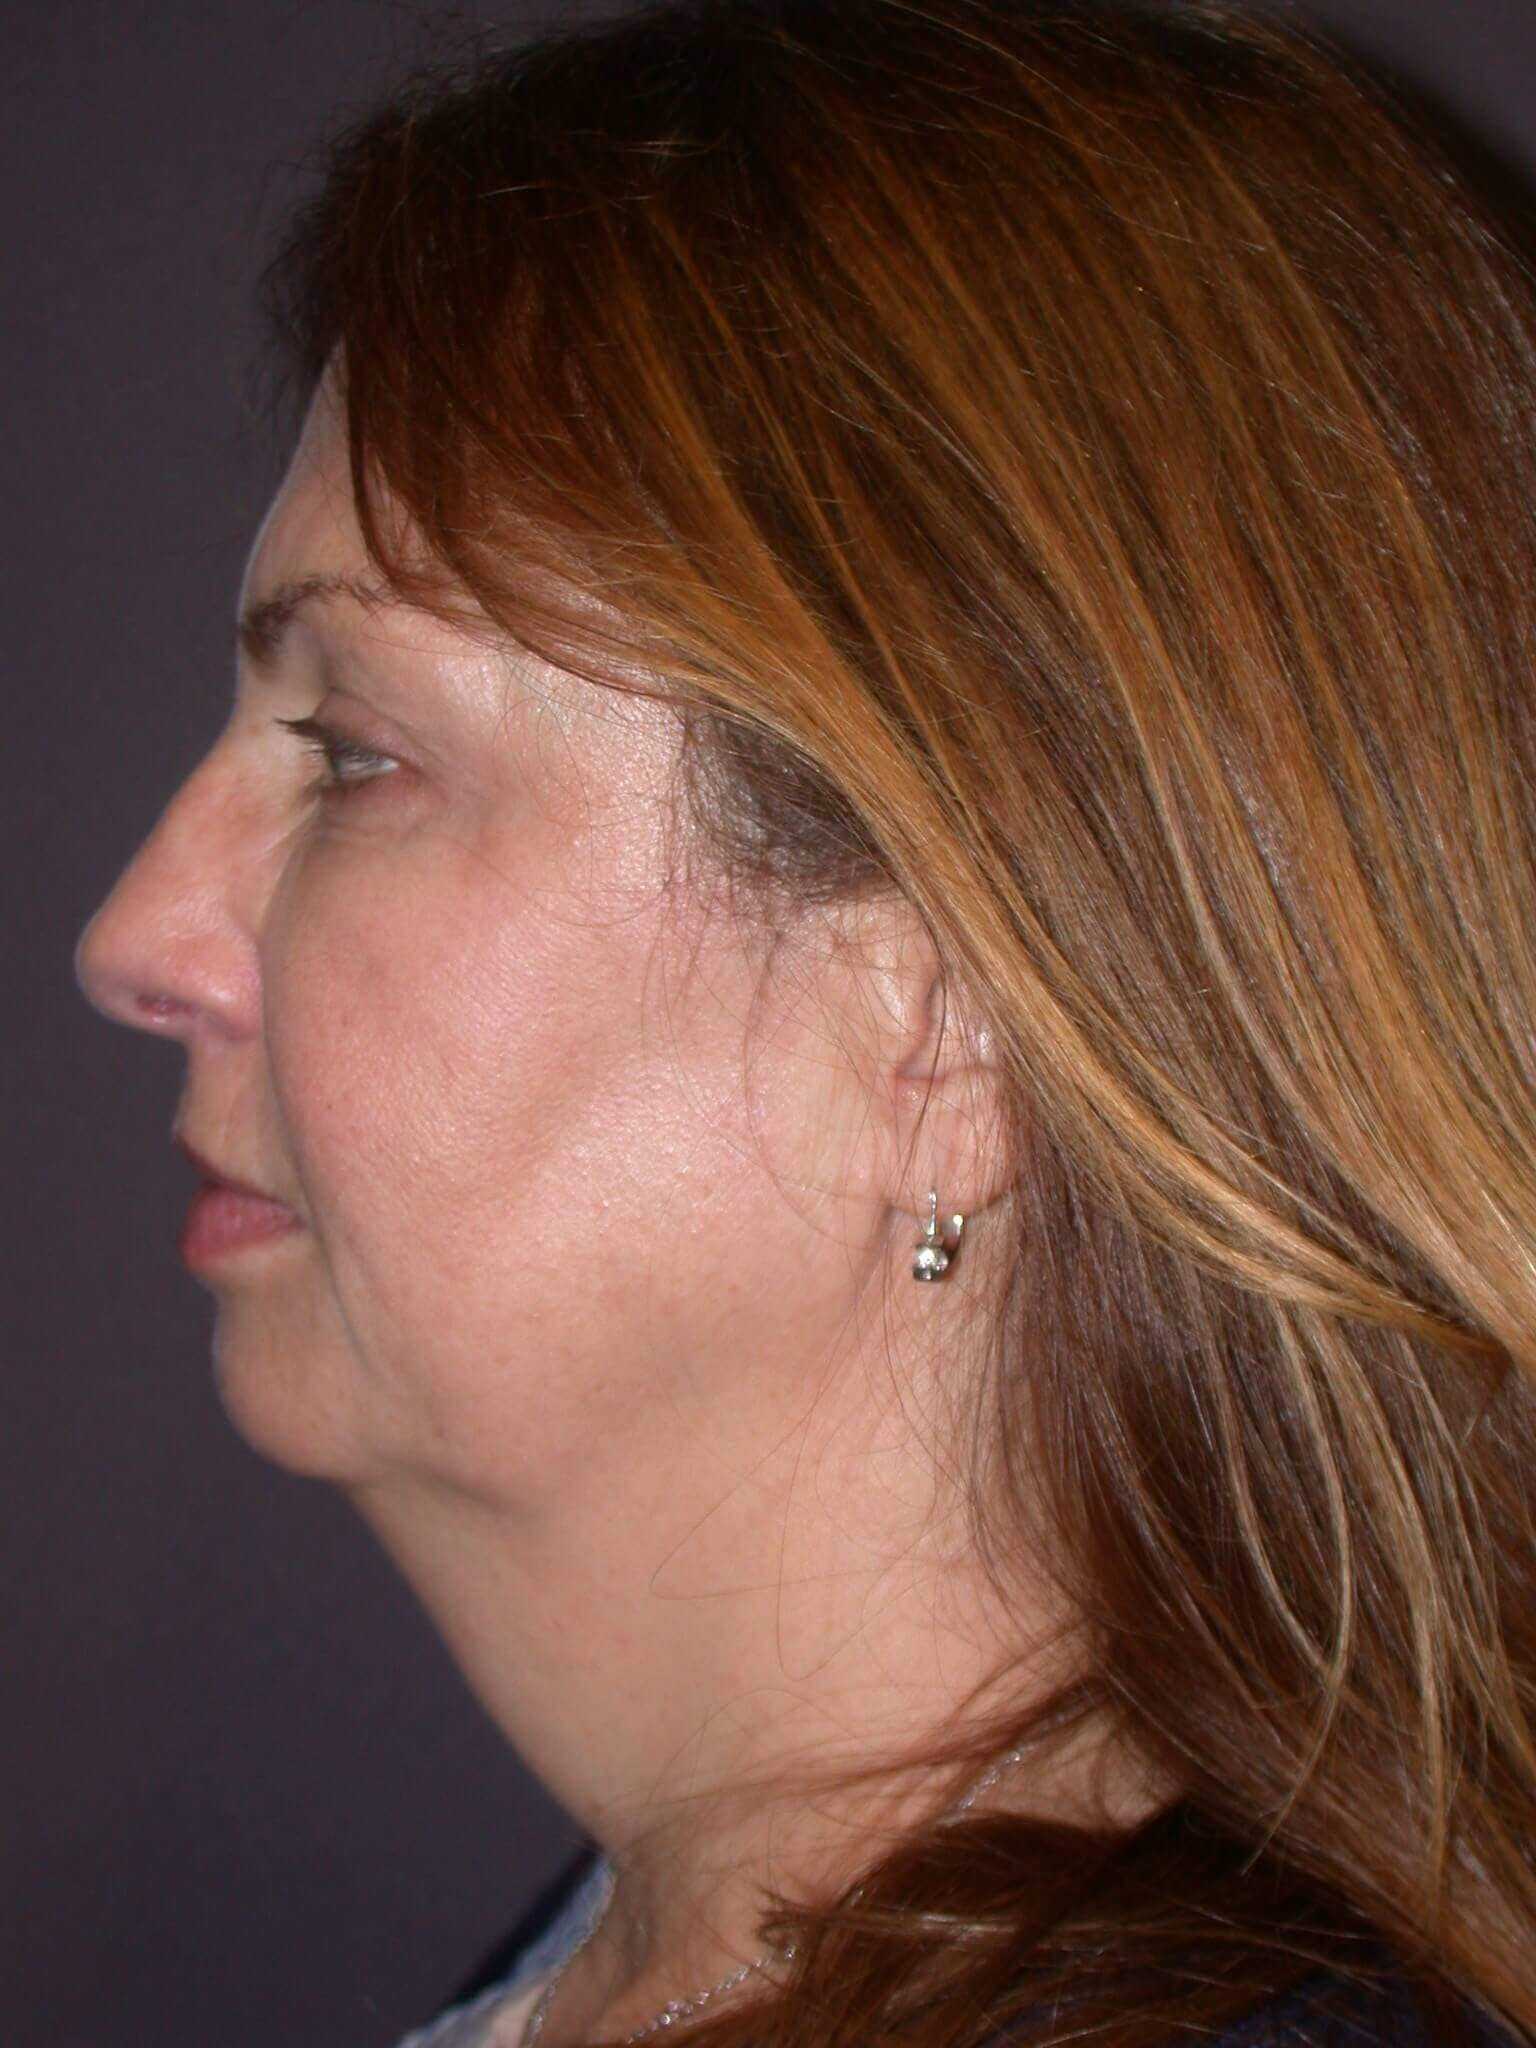 Before & After a neck lift in San Francisco